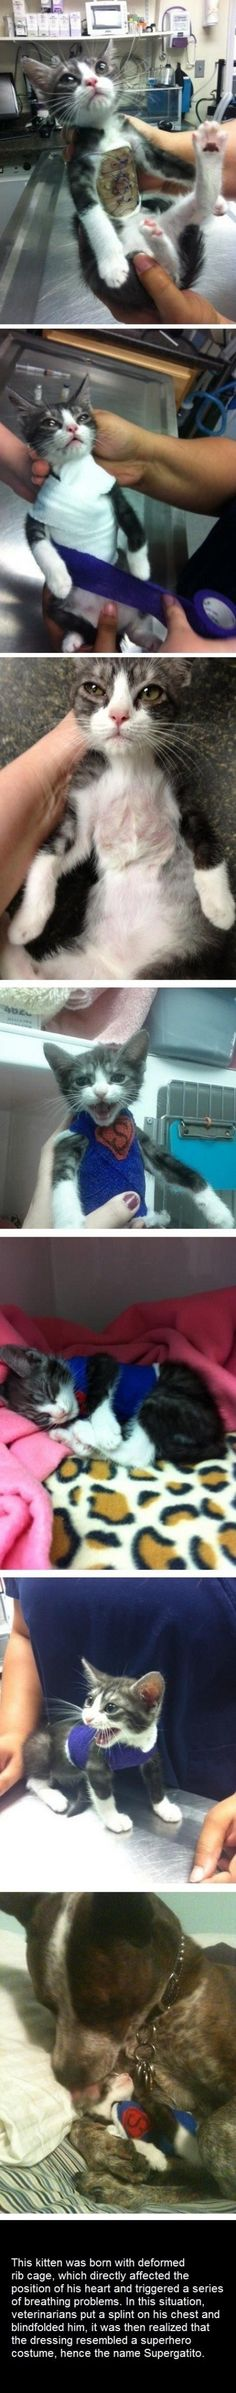 Superkitty.